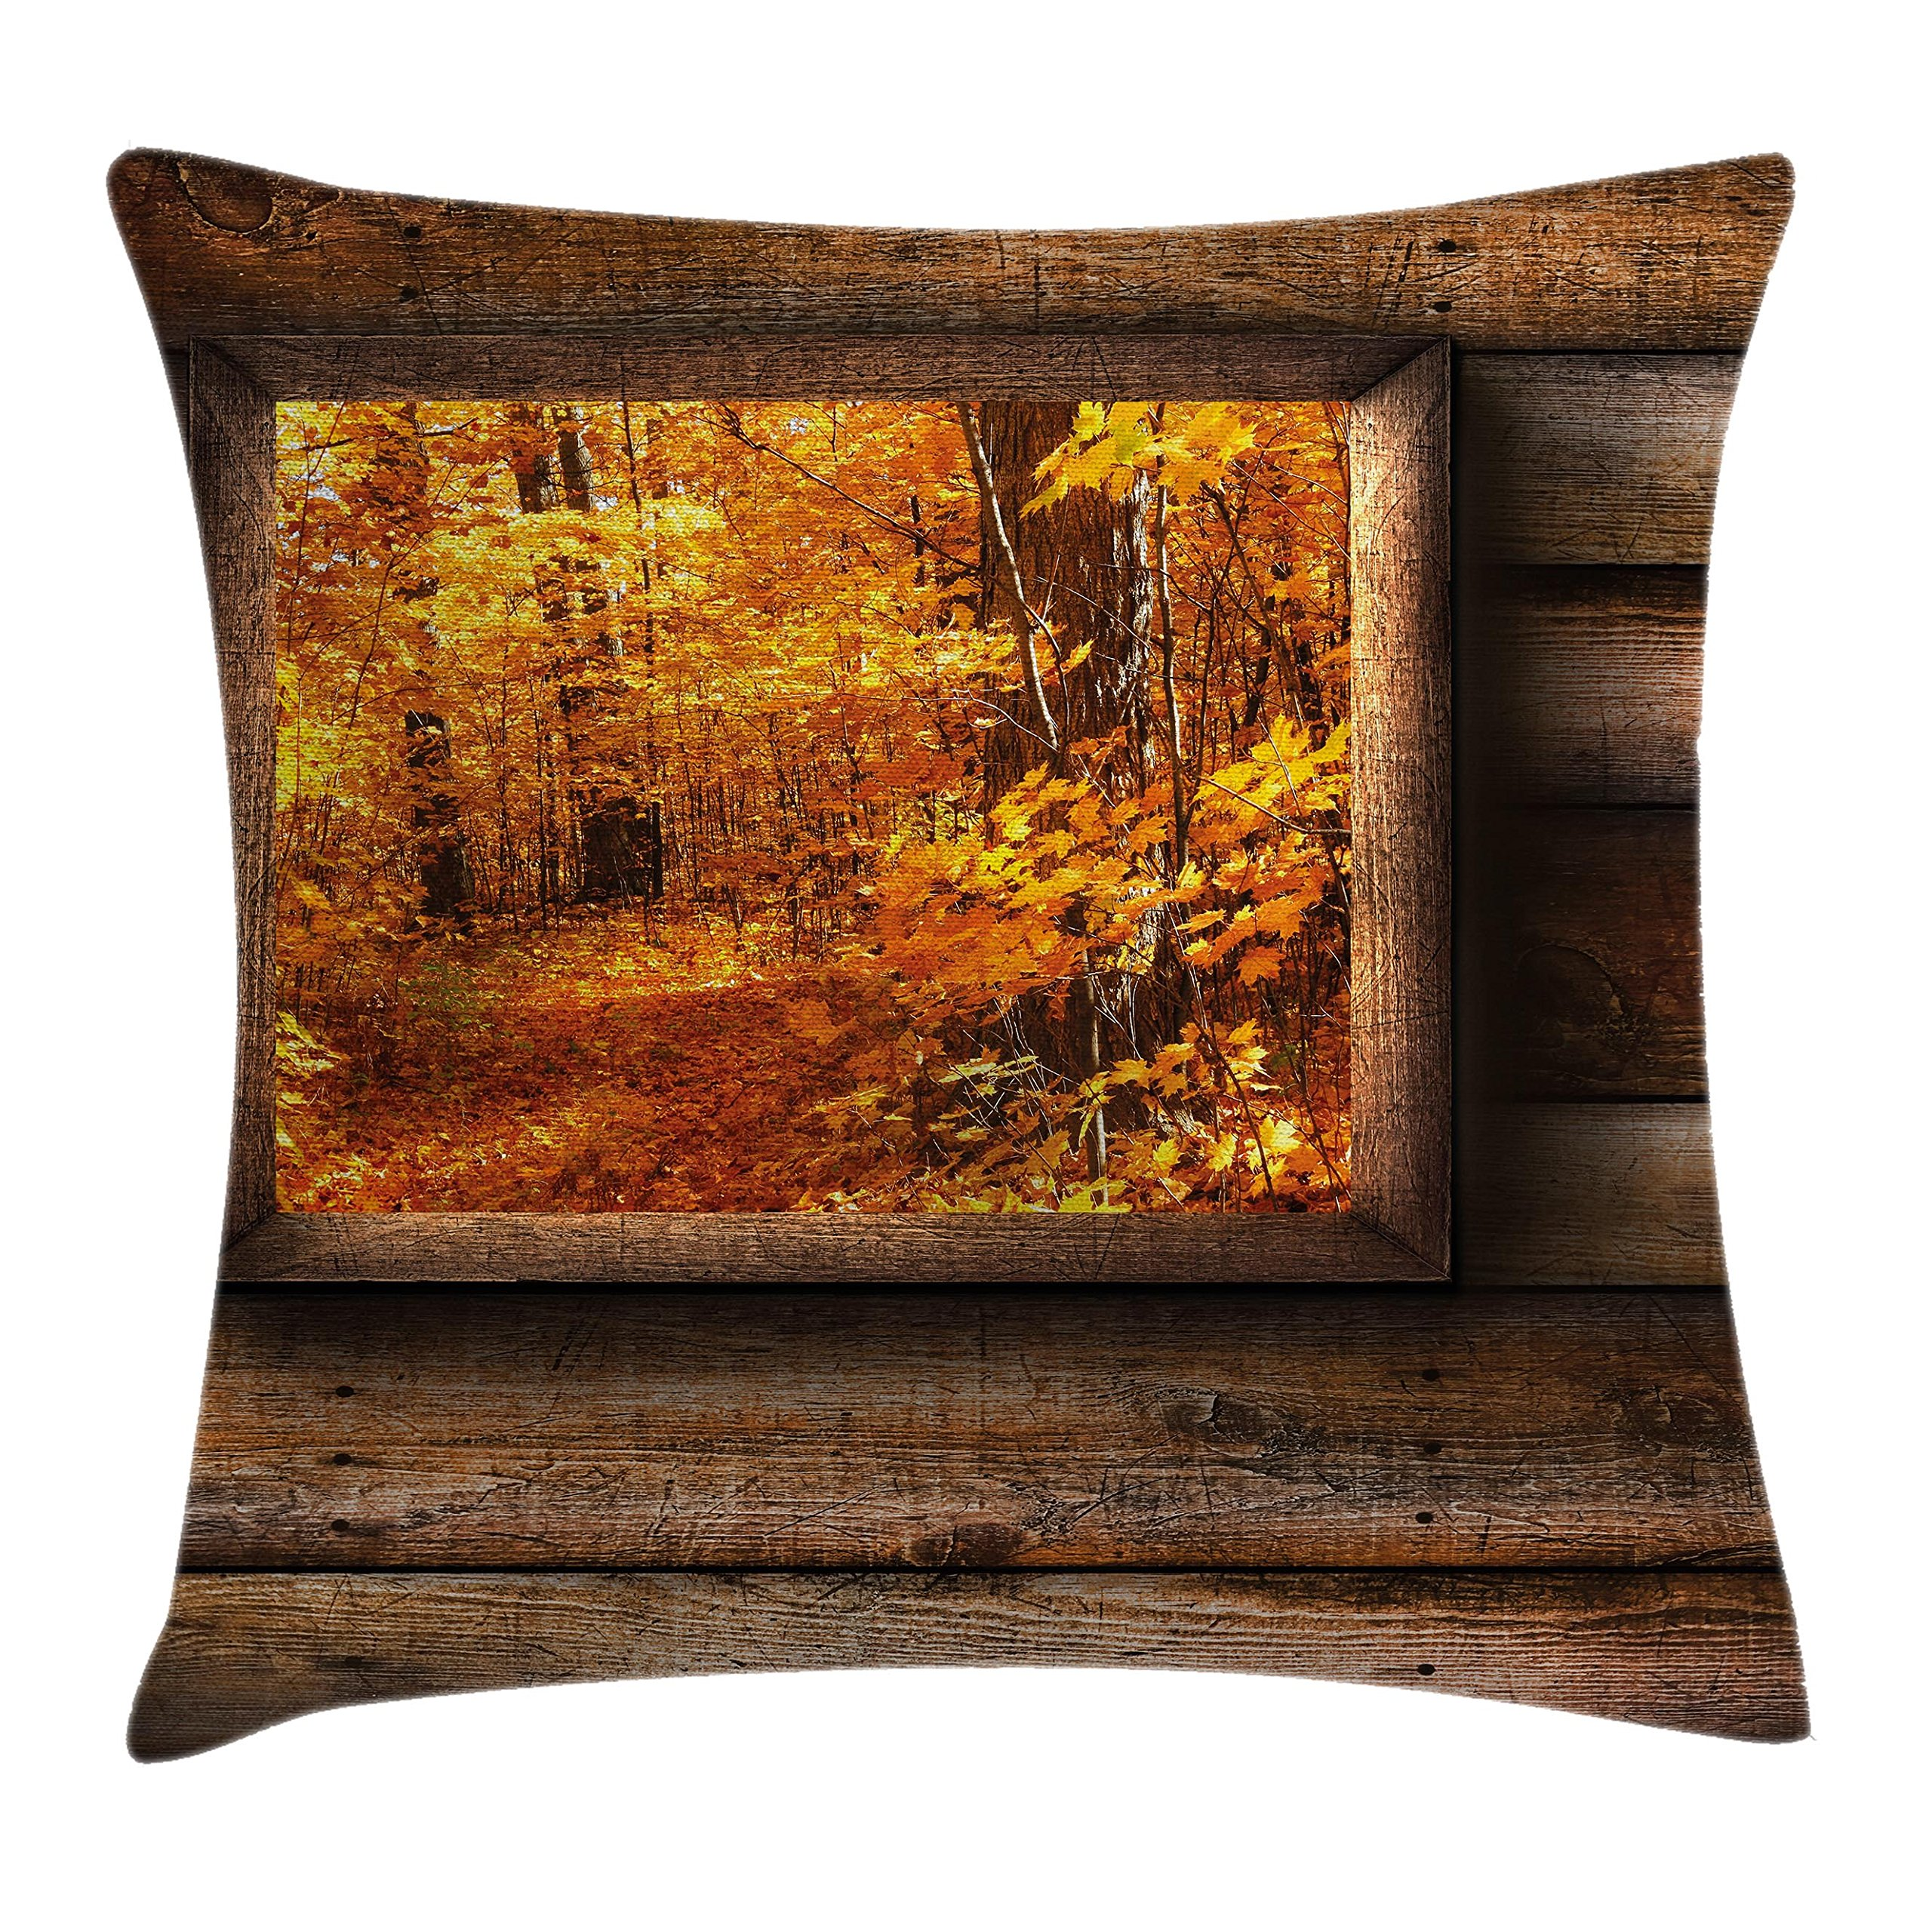 Ambesonne Fall Decorations Throw Pillow Cushion Cover, Fall Foliage View from Square Shaped Wooden Window Inside Cottage Photo, Decorative Square Accent Pillow Case, 18 X 18 inches, Orange Brown